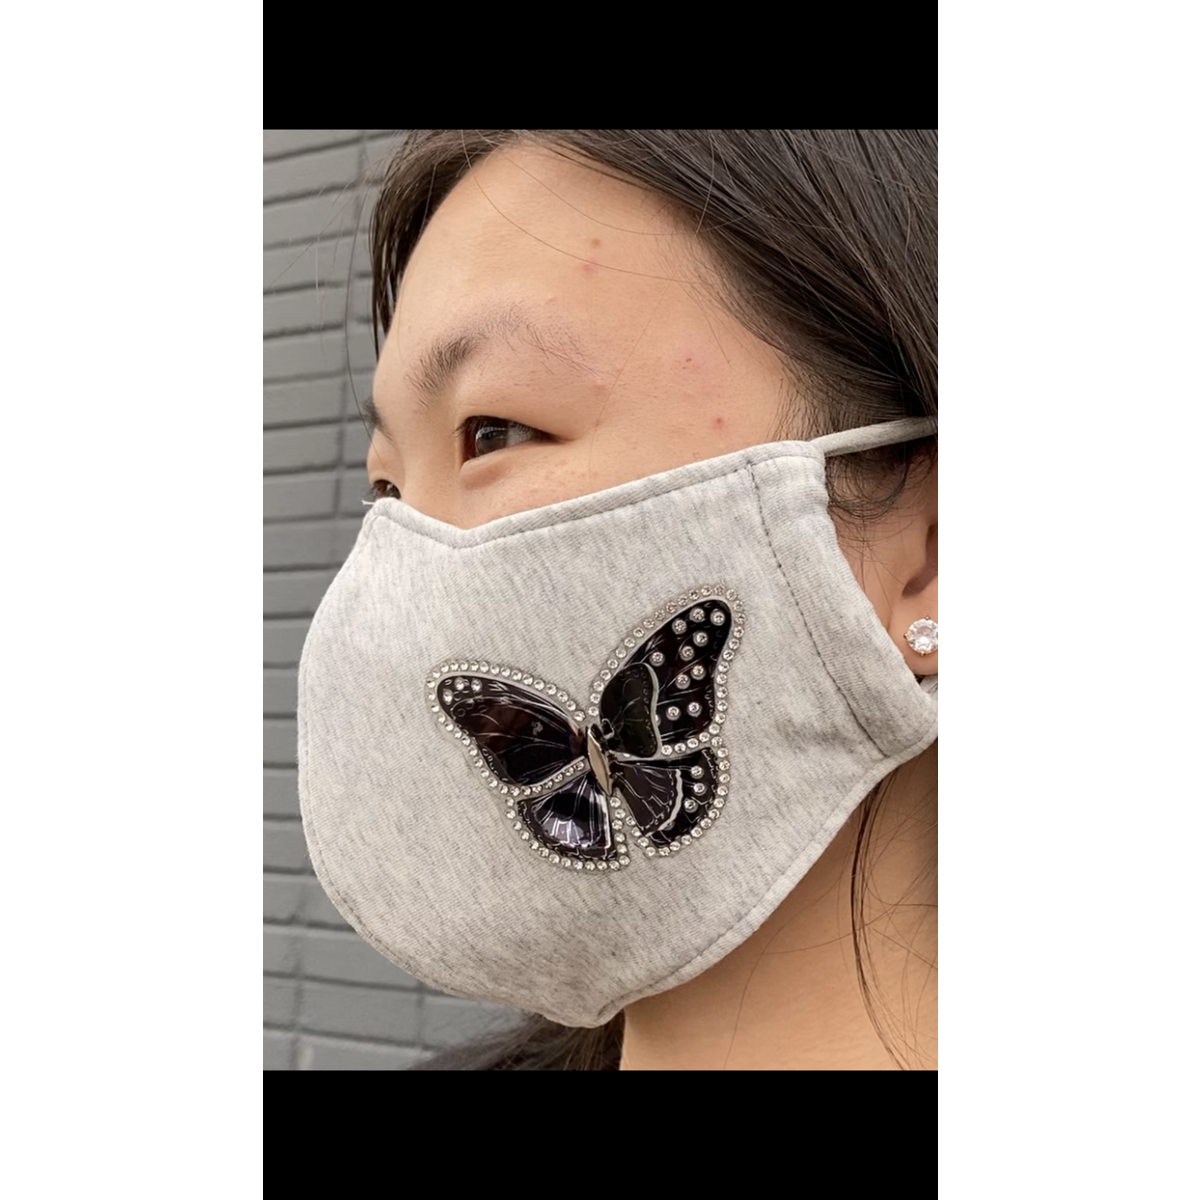 3D design mask, 3D crystal butterfly face mask, fashion mask, Washable 3-Layer Face Cover, 3-Ply Cloth Droplet Repelling Face Mask for Kids, Boy, Girl, Toddler, Adults